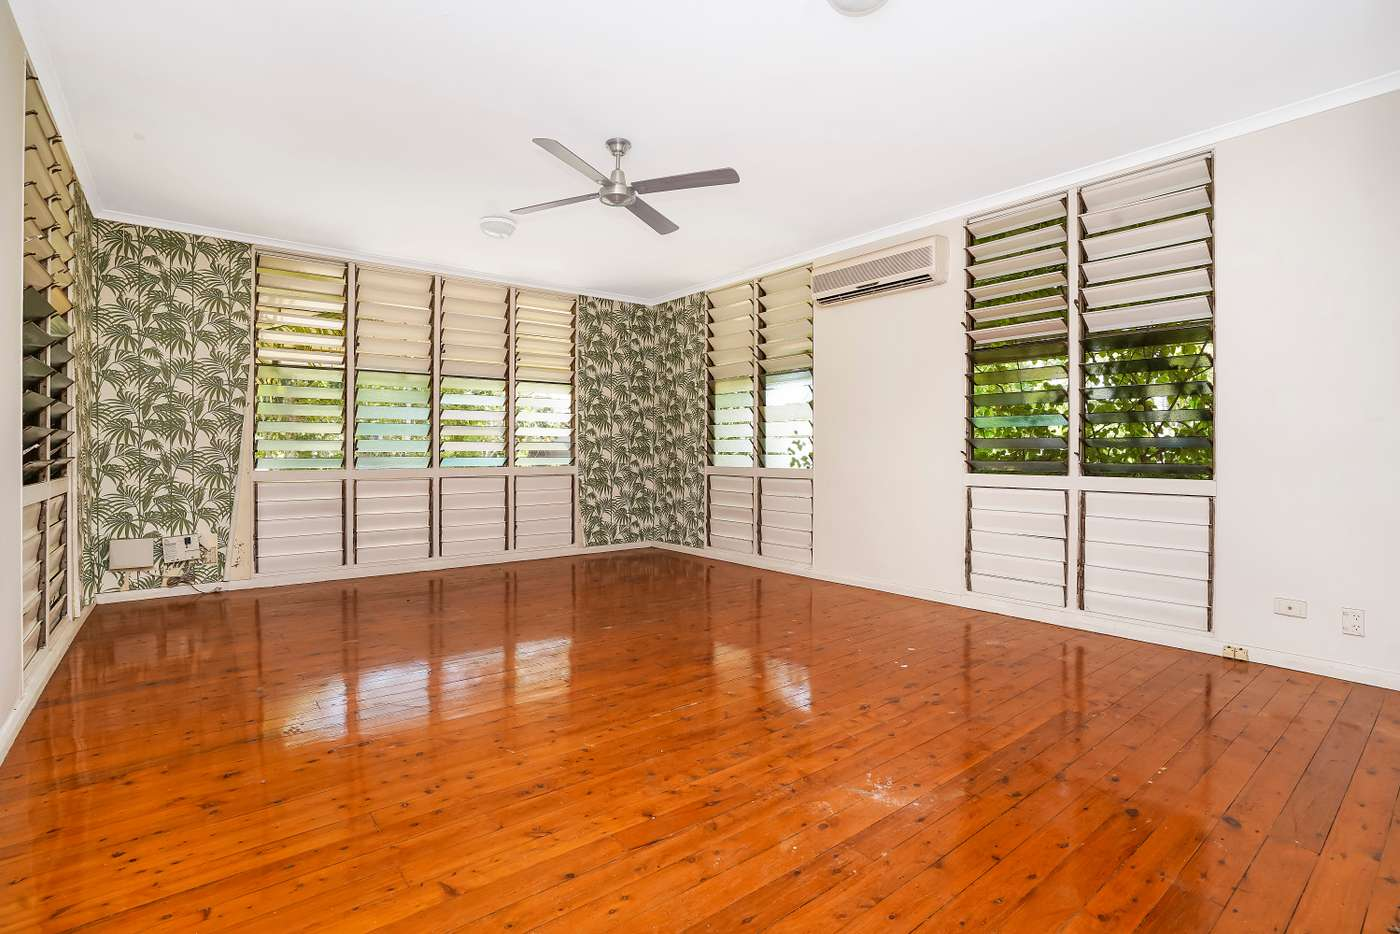 Fifth view of Homely house listing, 1 Schultze Street, Larrakeyah NT 820